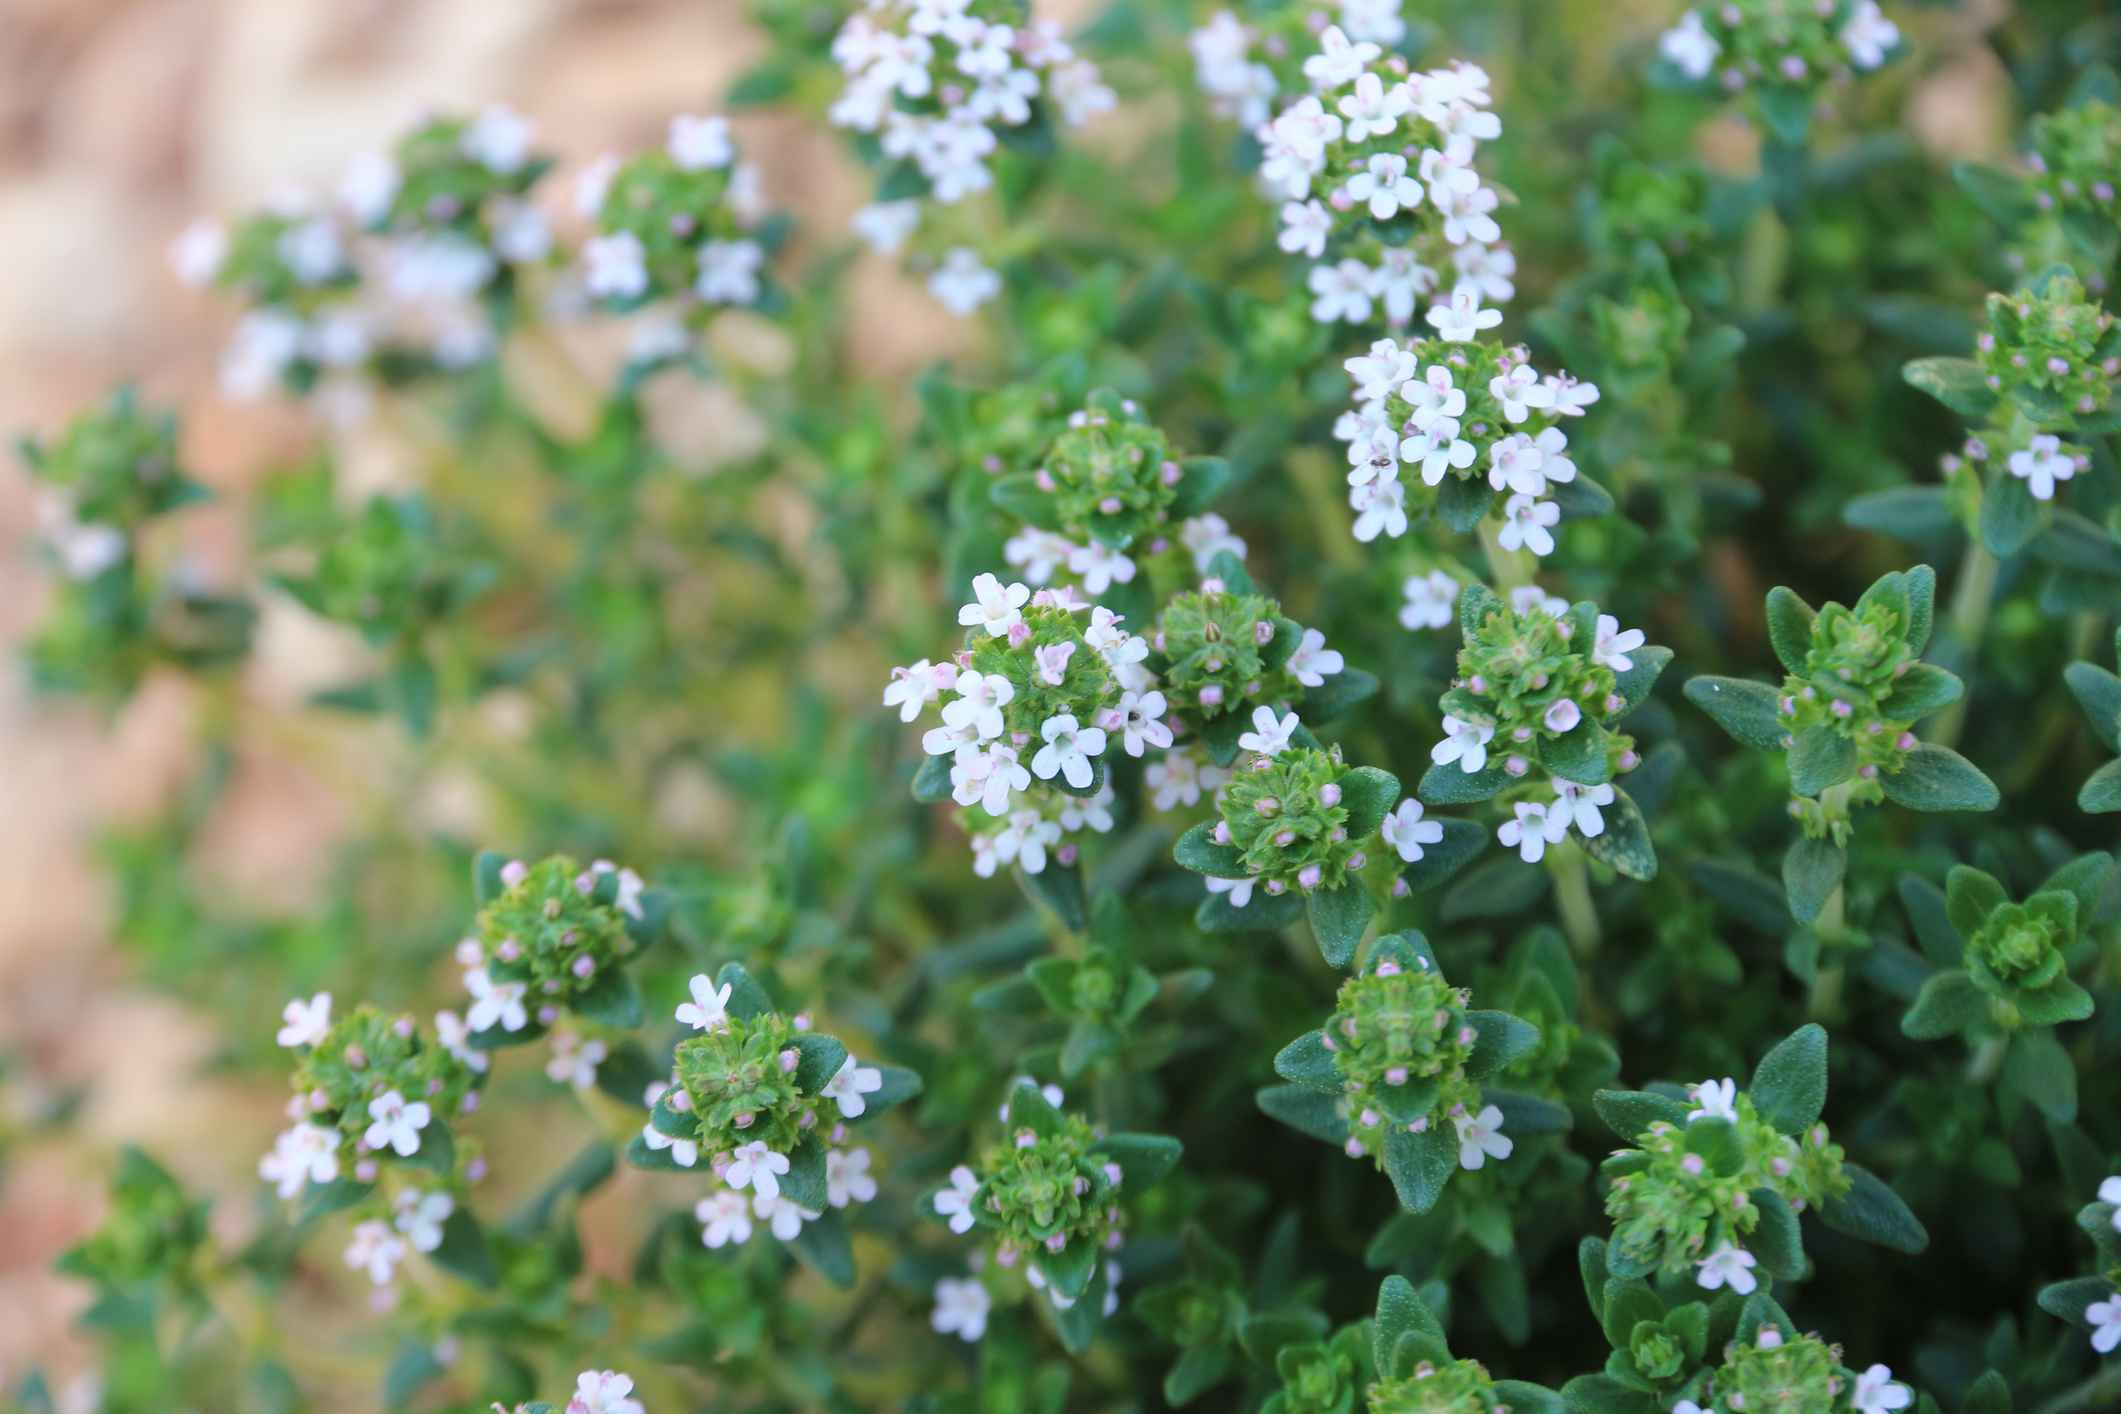 12 Plants That Repel Those Pesky Mosquitoes